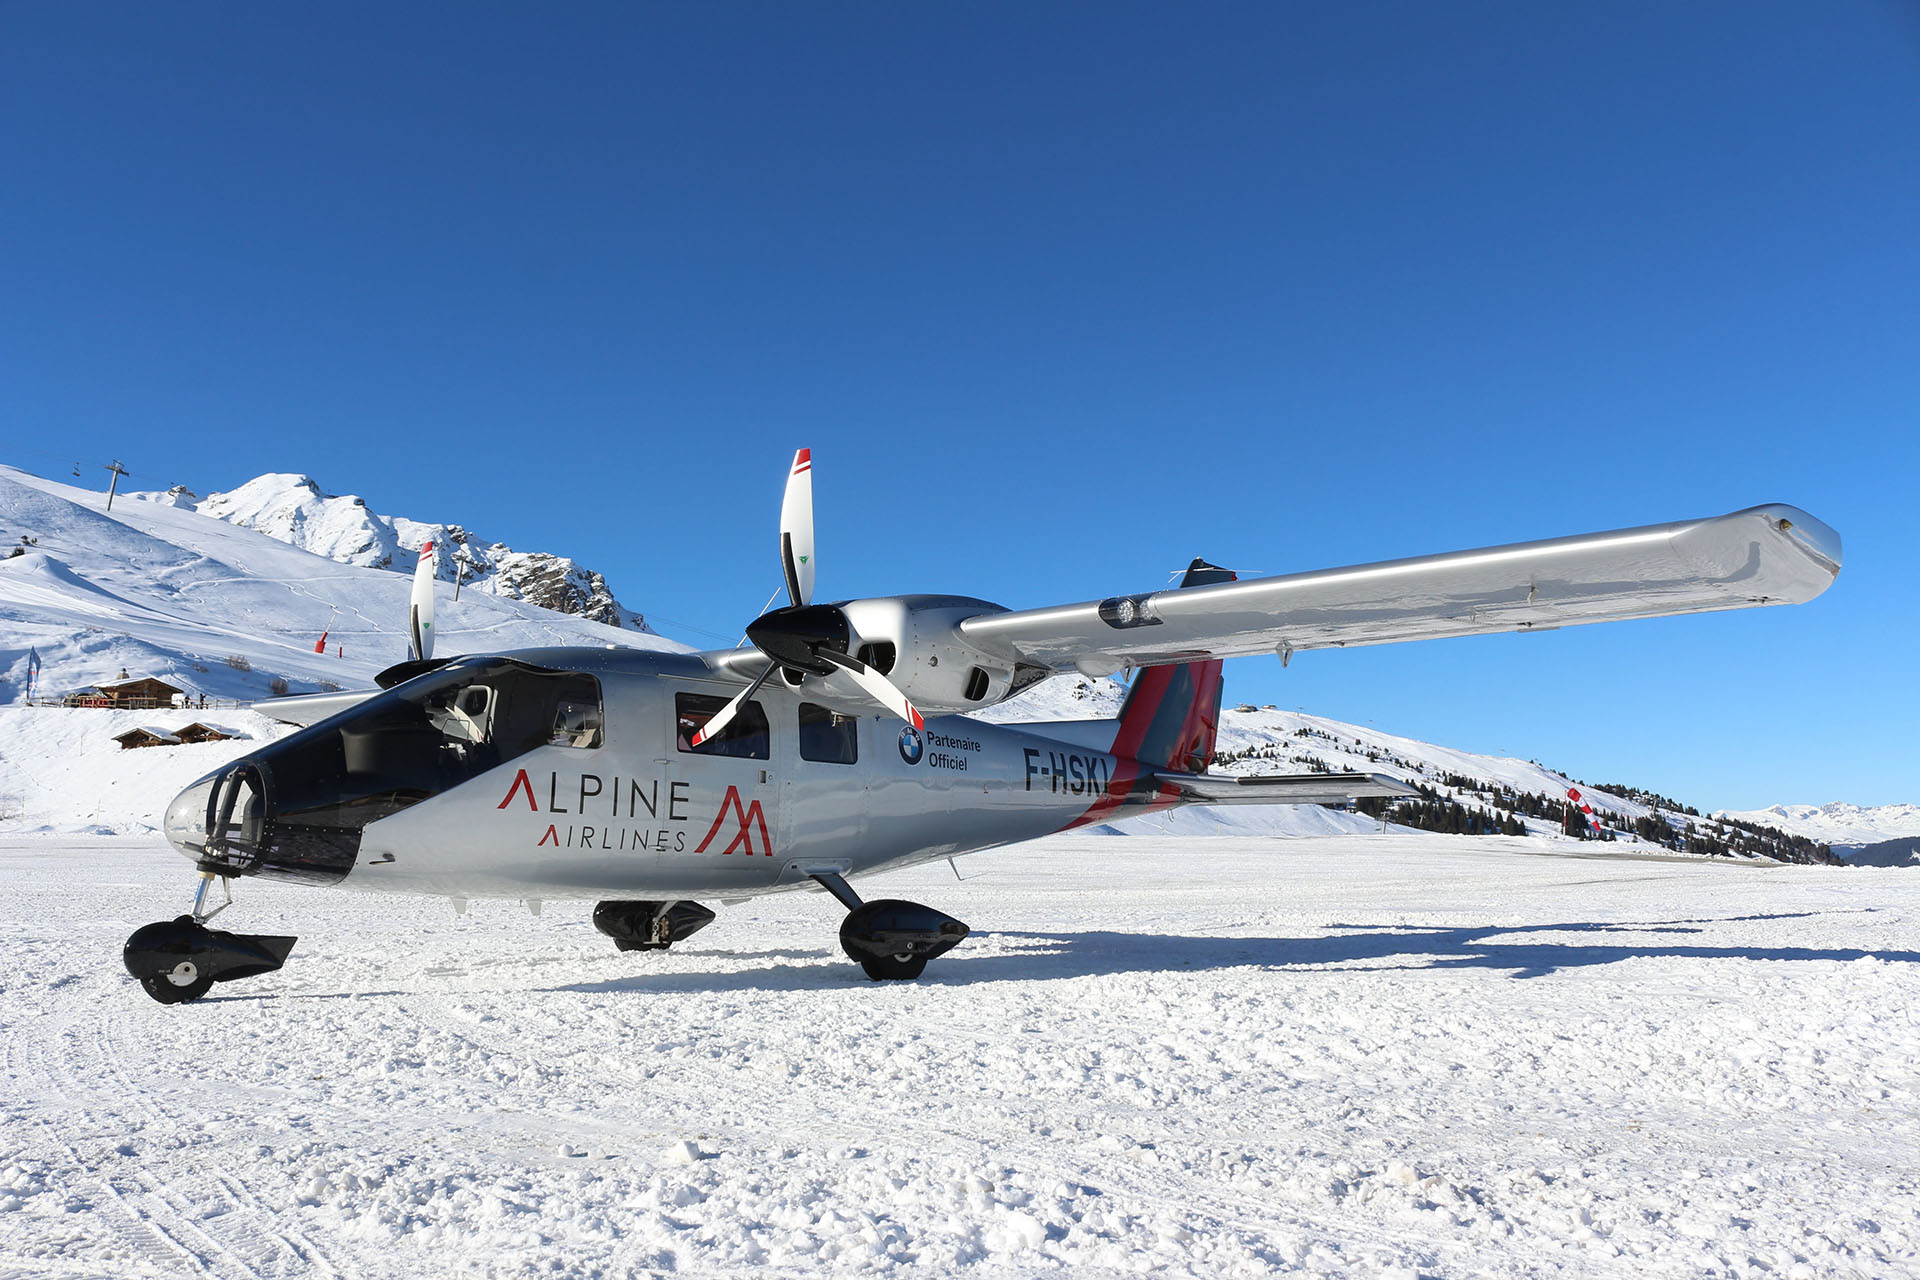 Vols commerciaux Paris Courchevel Alpine Airlines